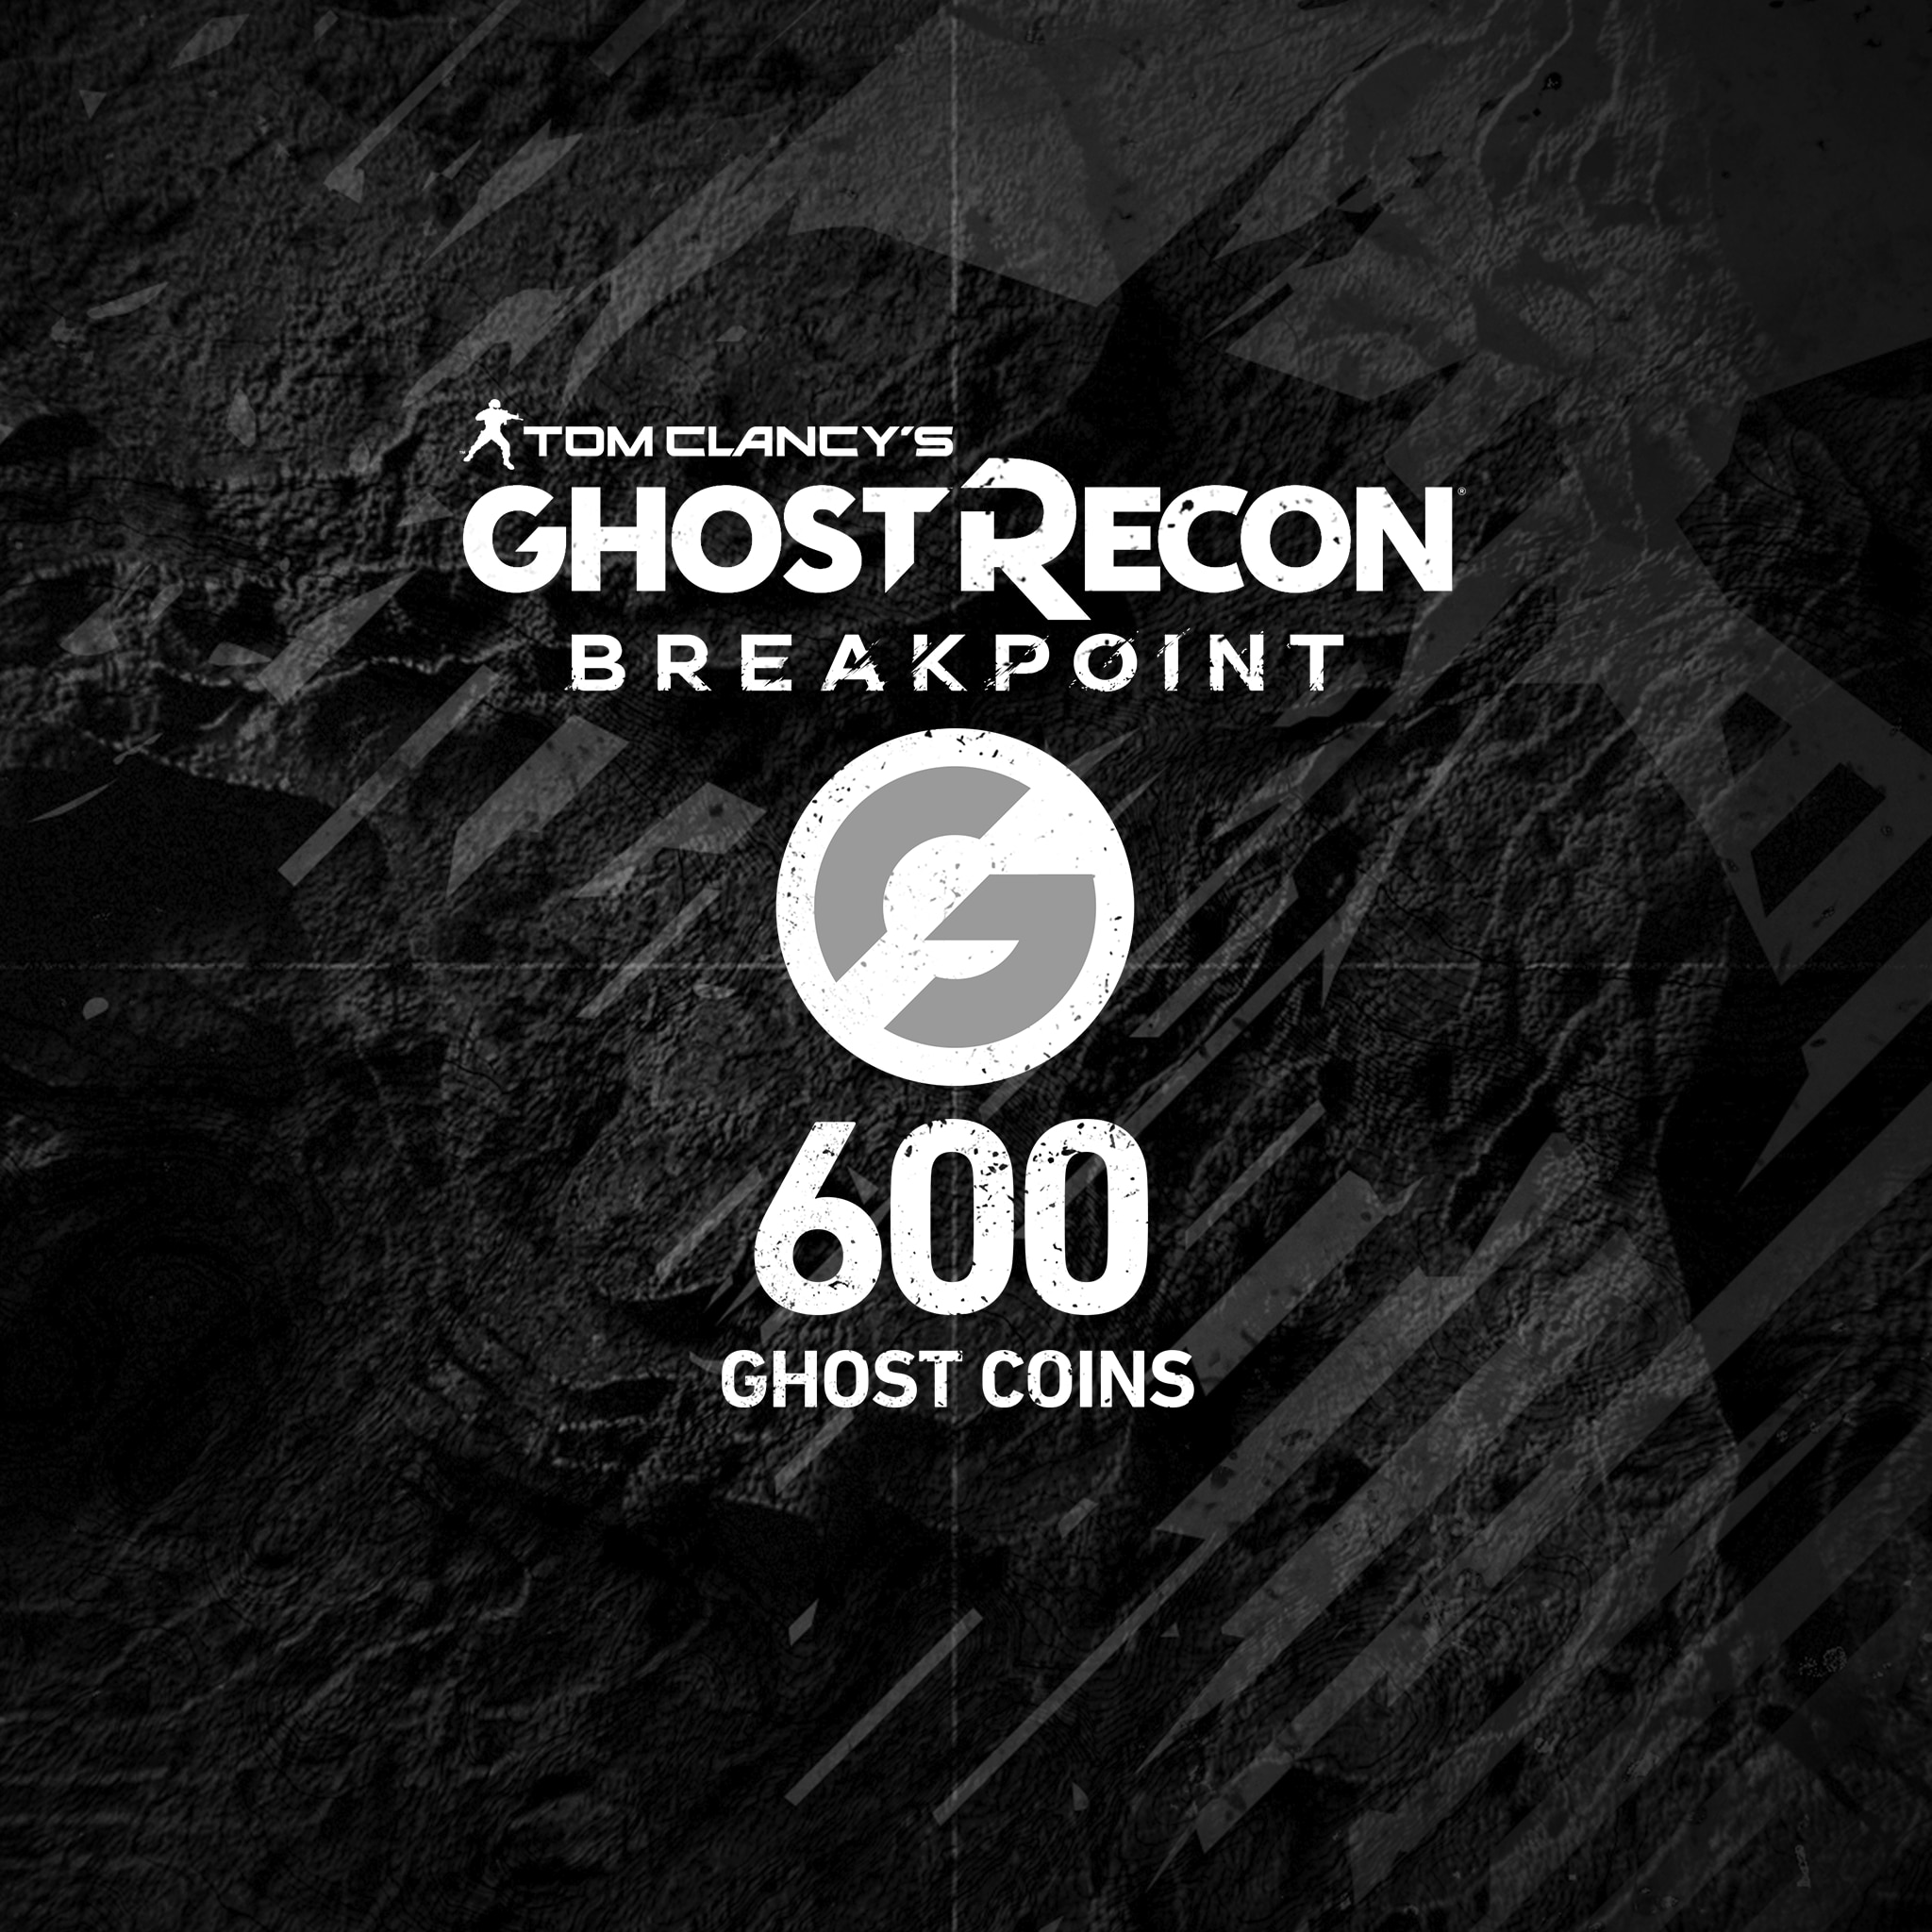 Ghost Recon Breakpoint - 600 Ghost Coins